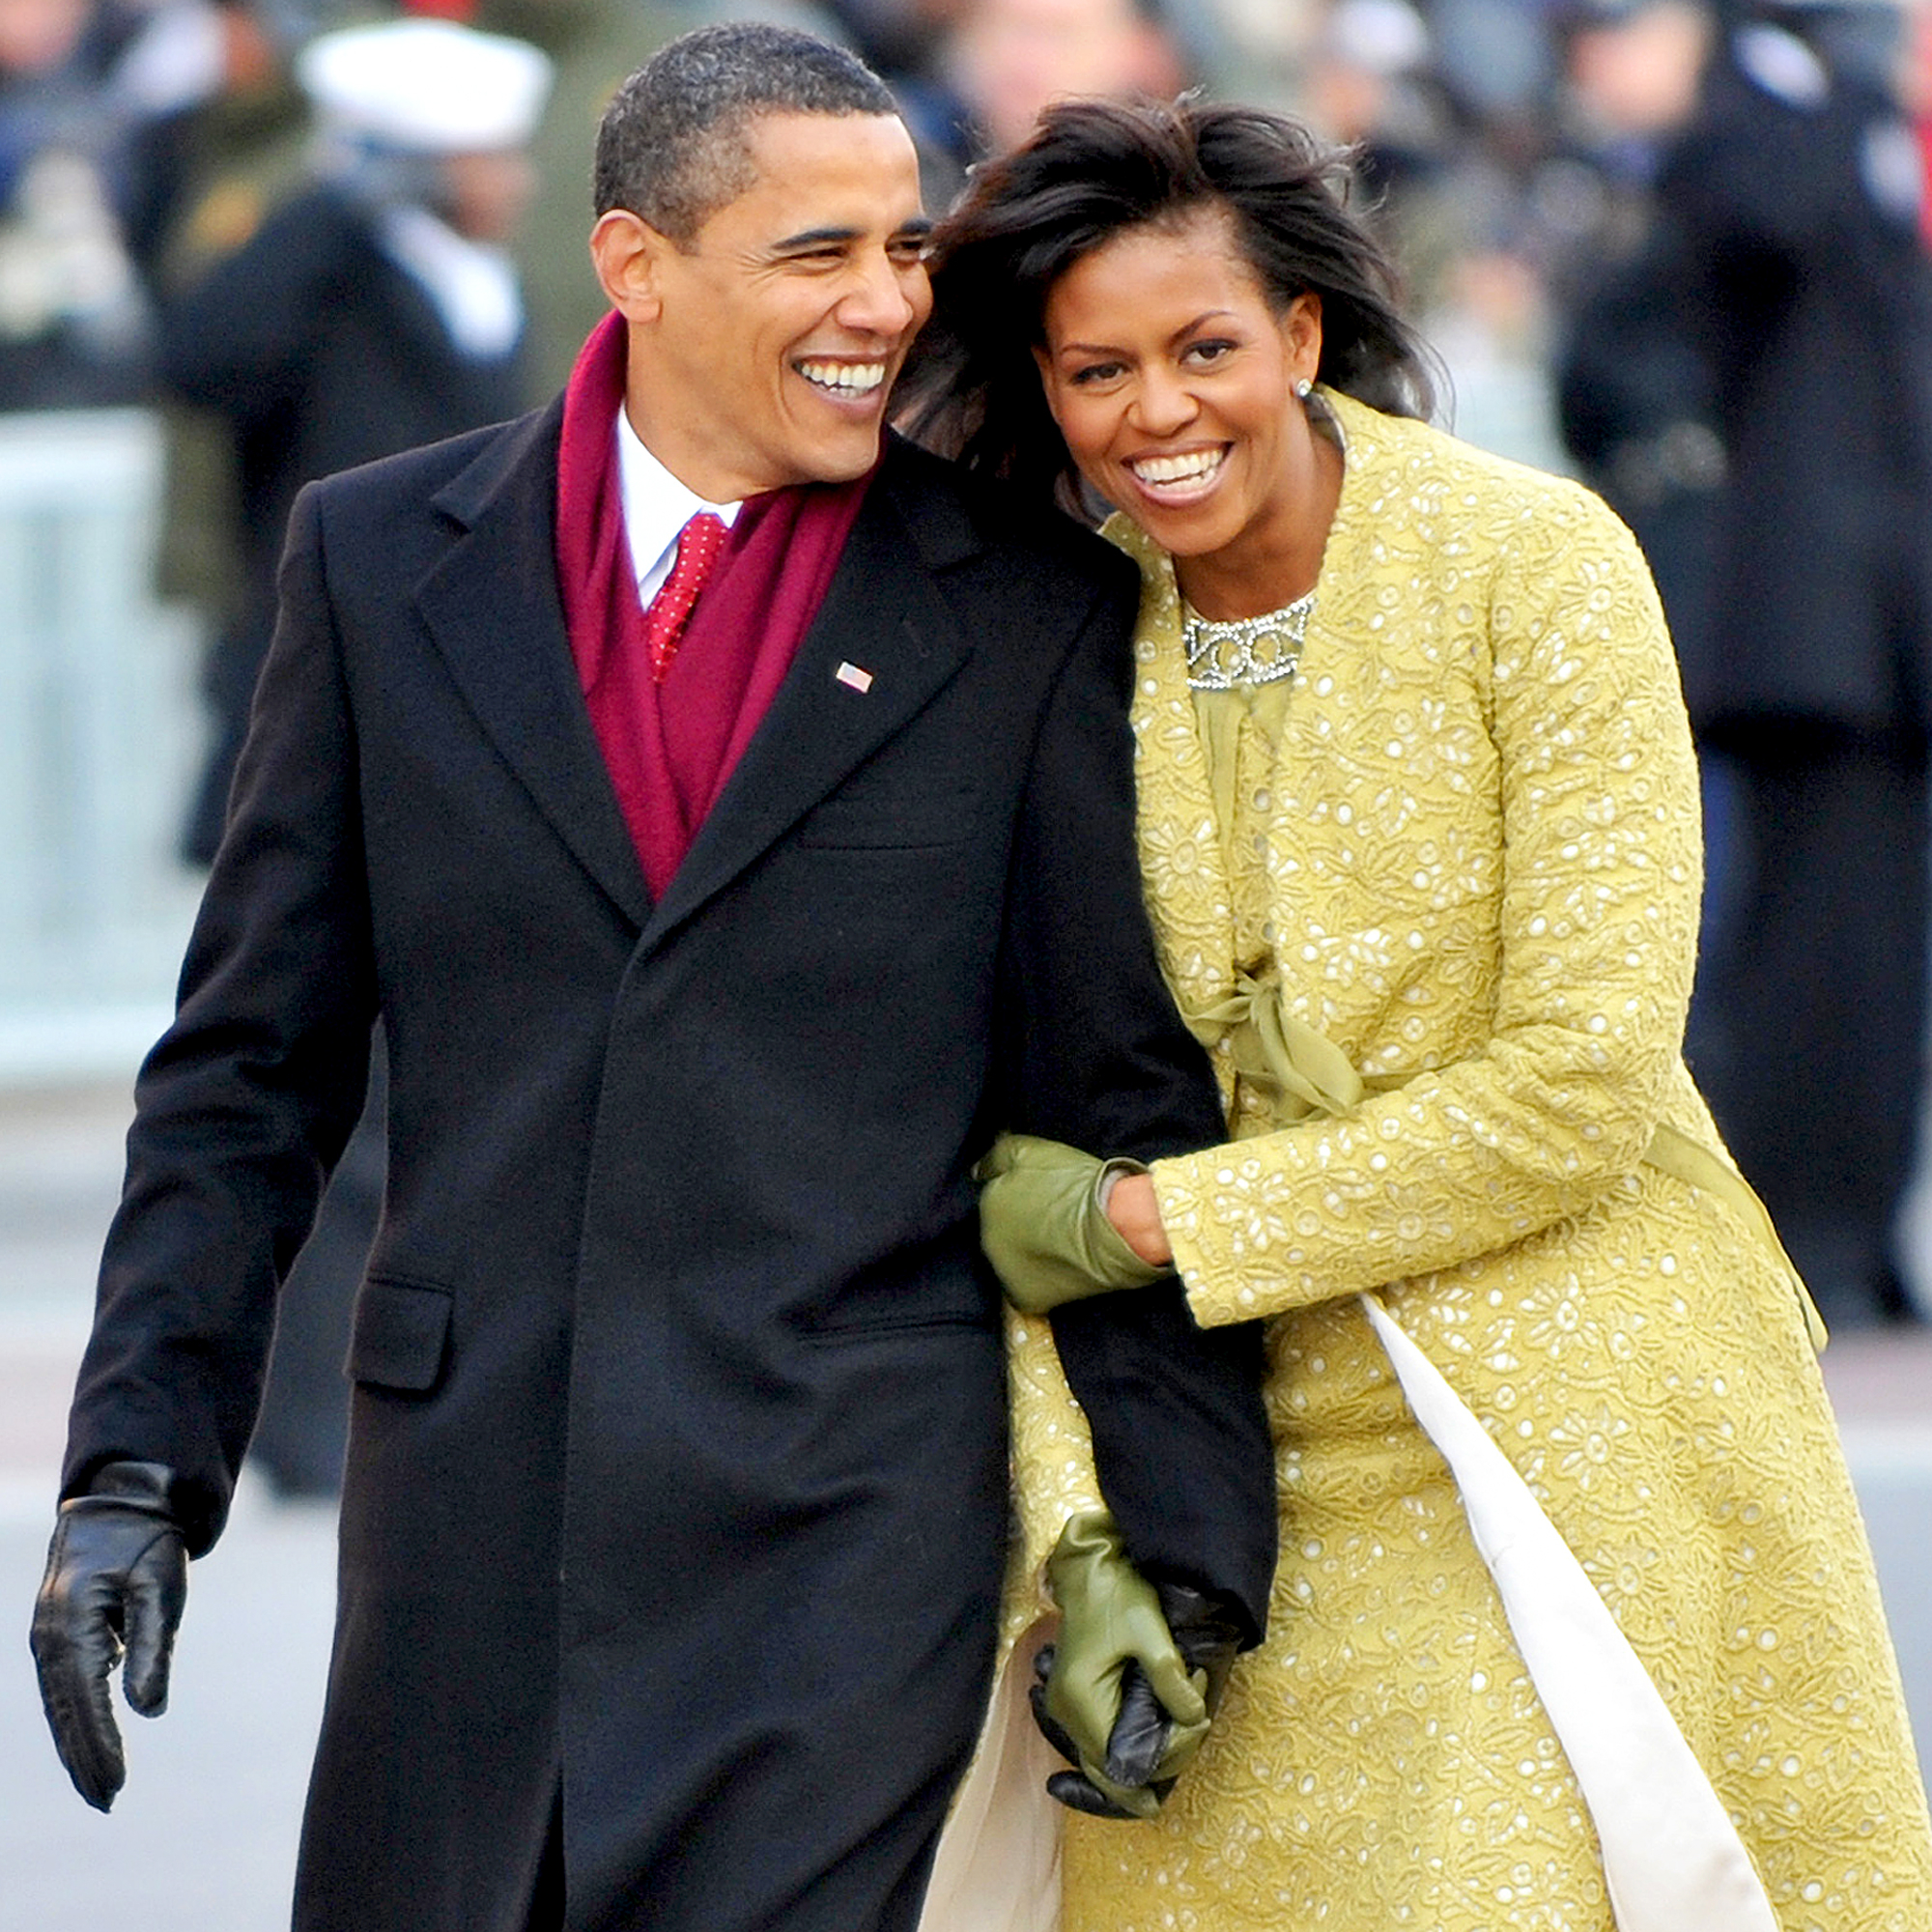 Barack and Michelle! They inspire us and lead by example.